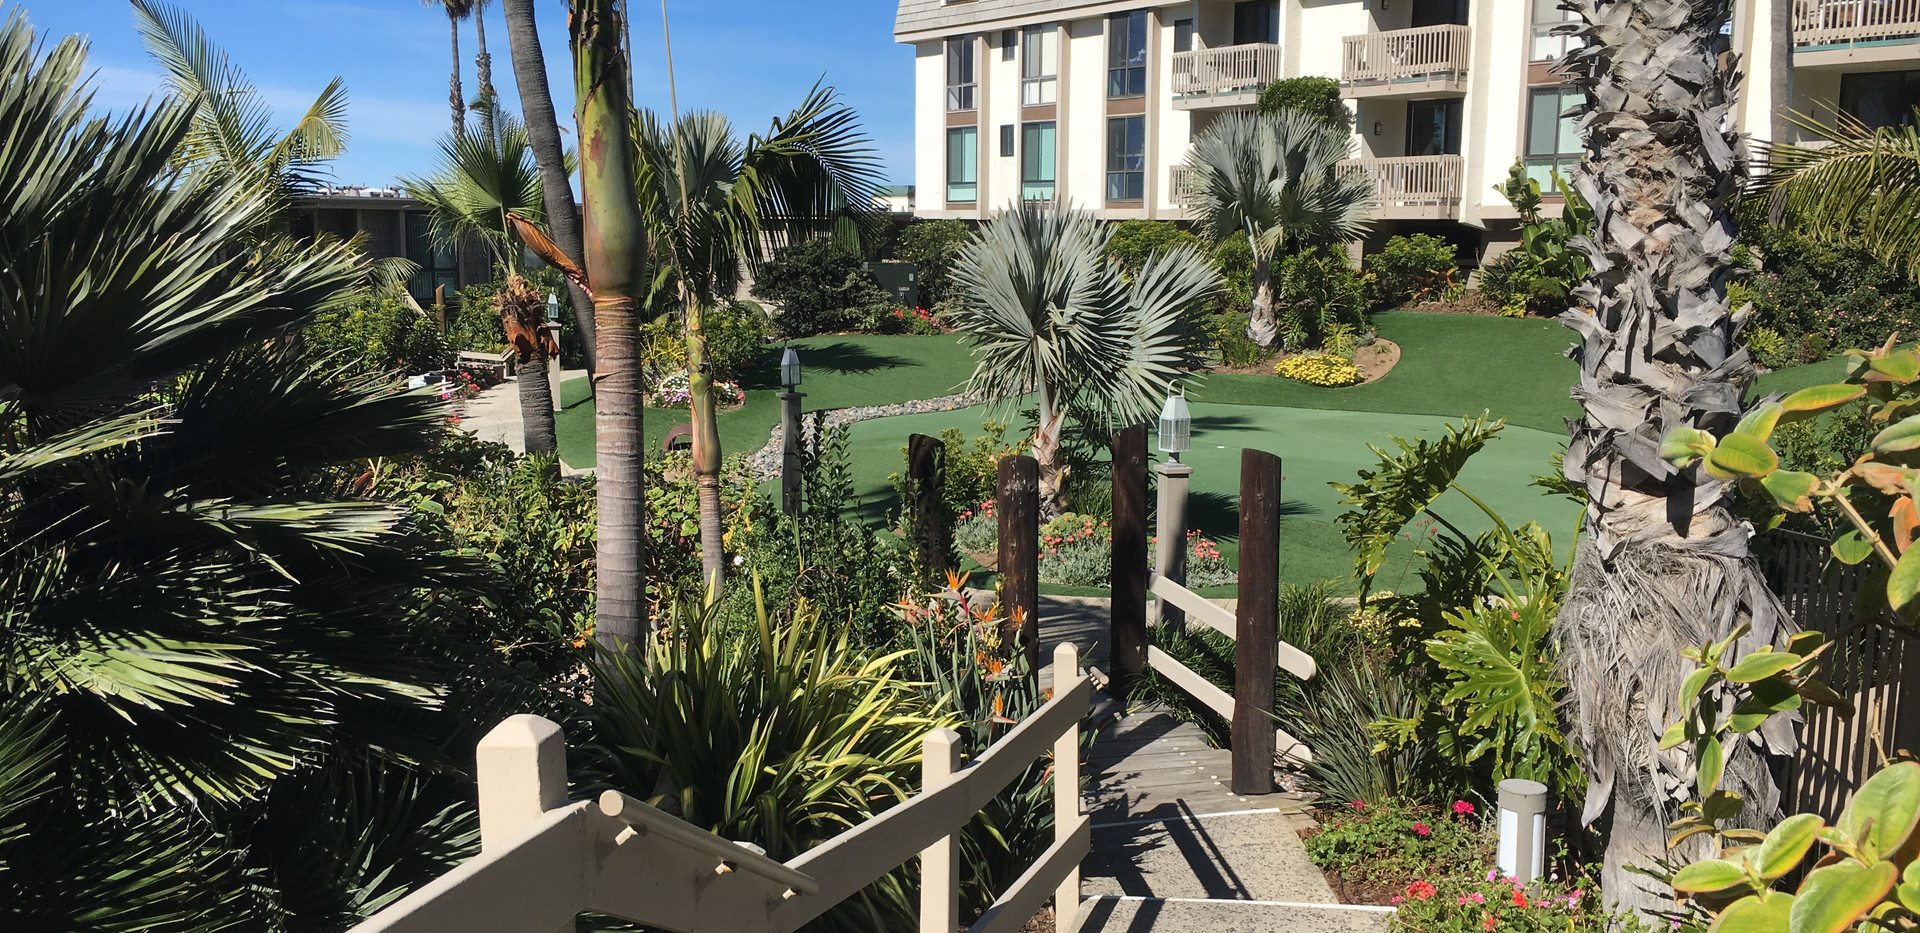 Tropical Landscaped Aalkways